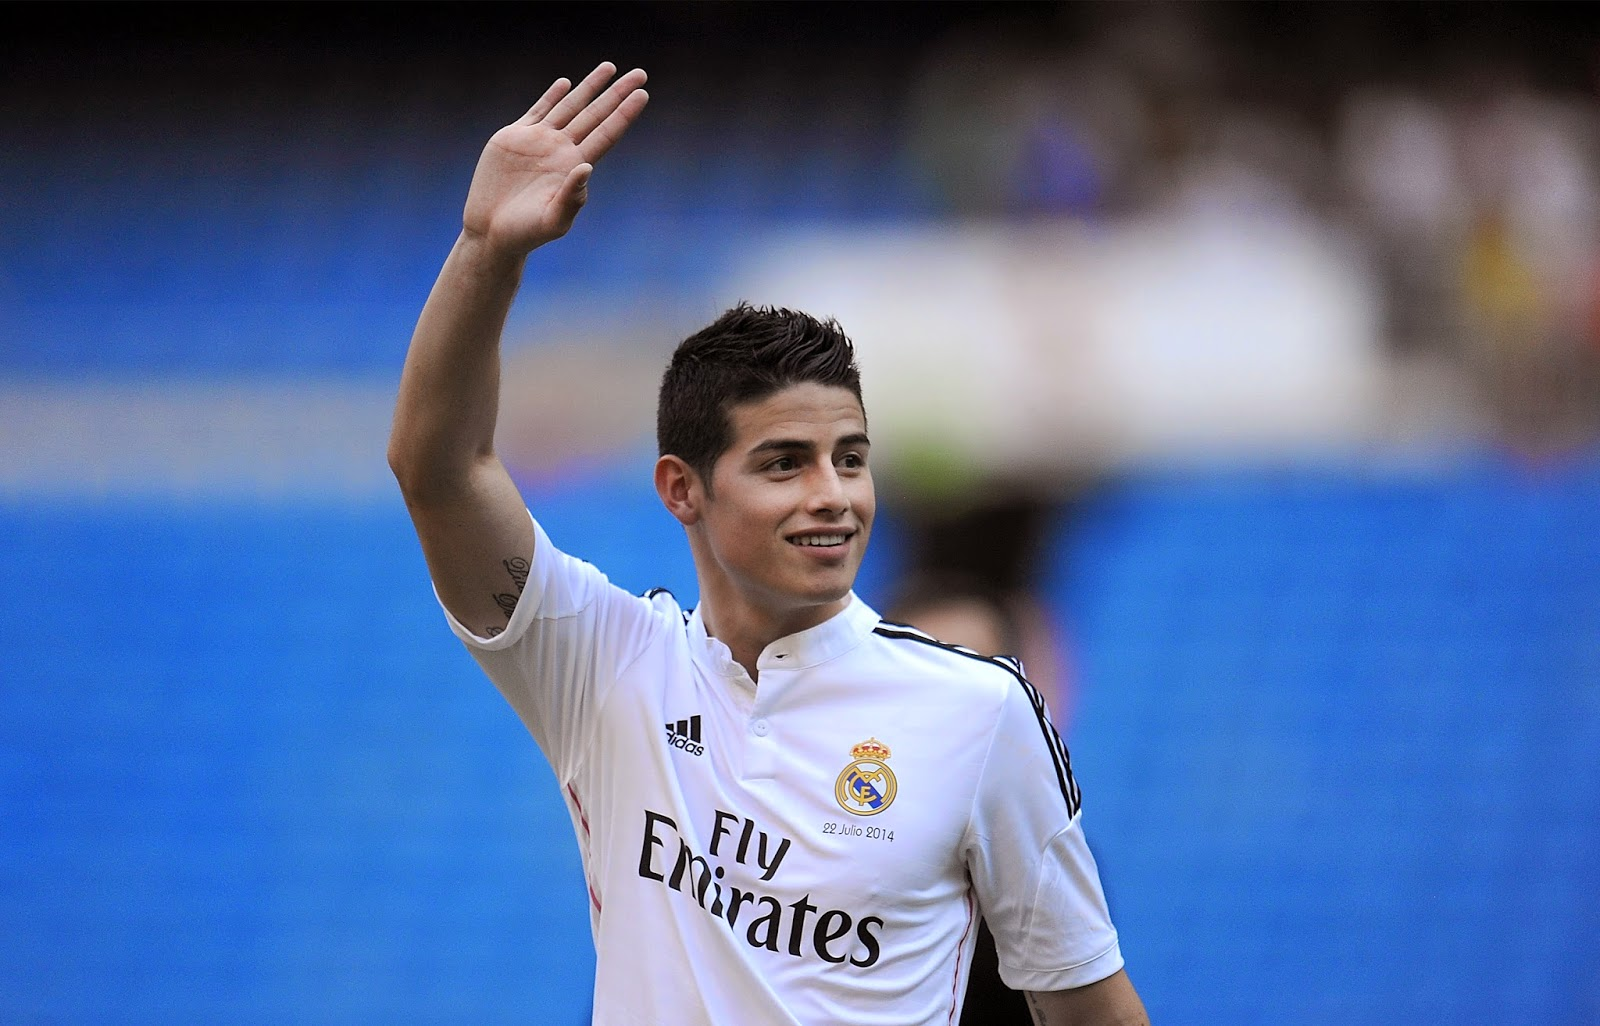 James Rodriguez Real Madrid 2014 - 2015 Free HD Wallpaper